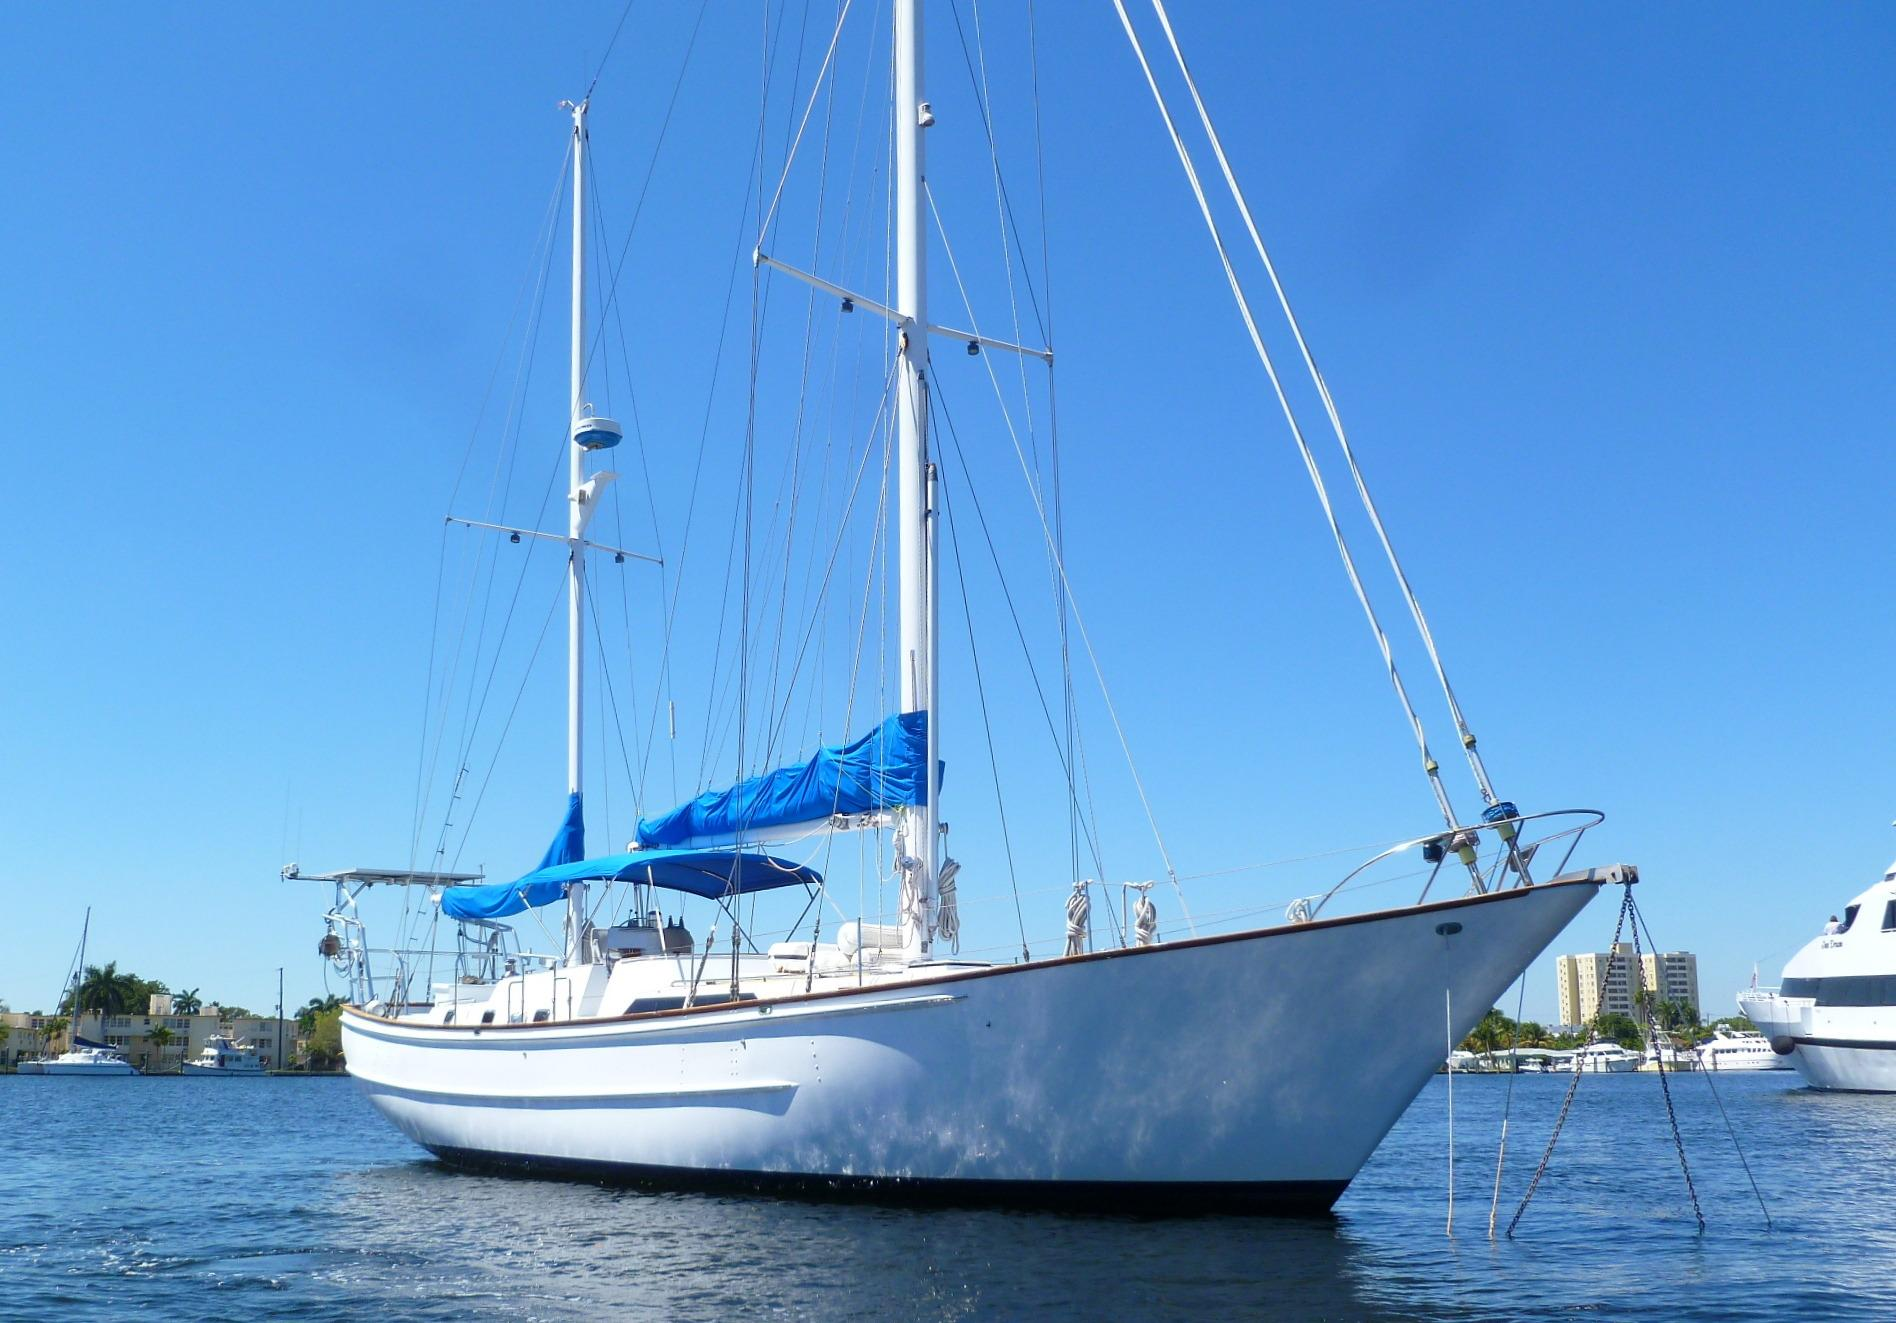 56' Nautical Development Corp 1979 Stevens 56